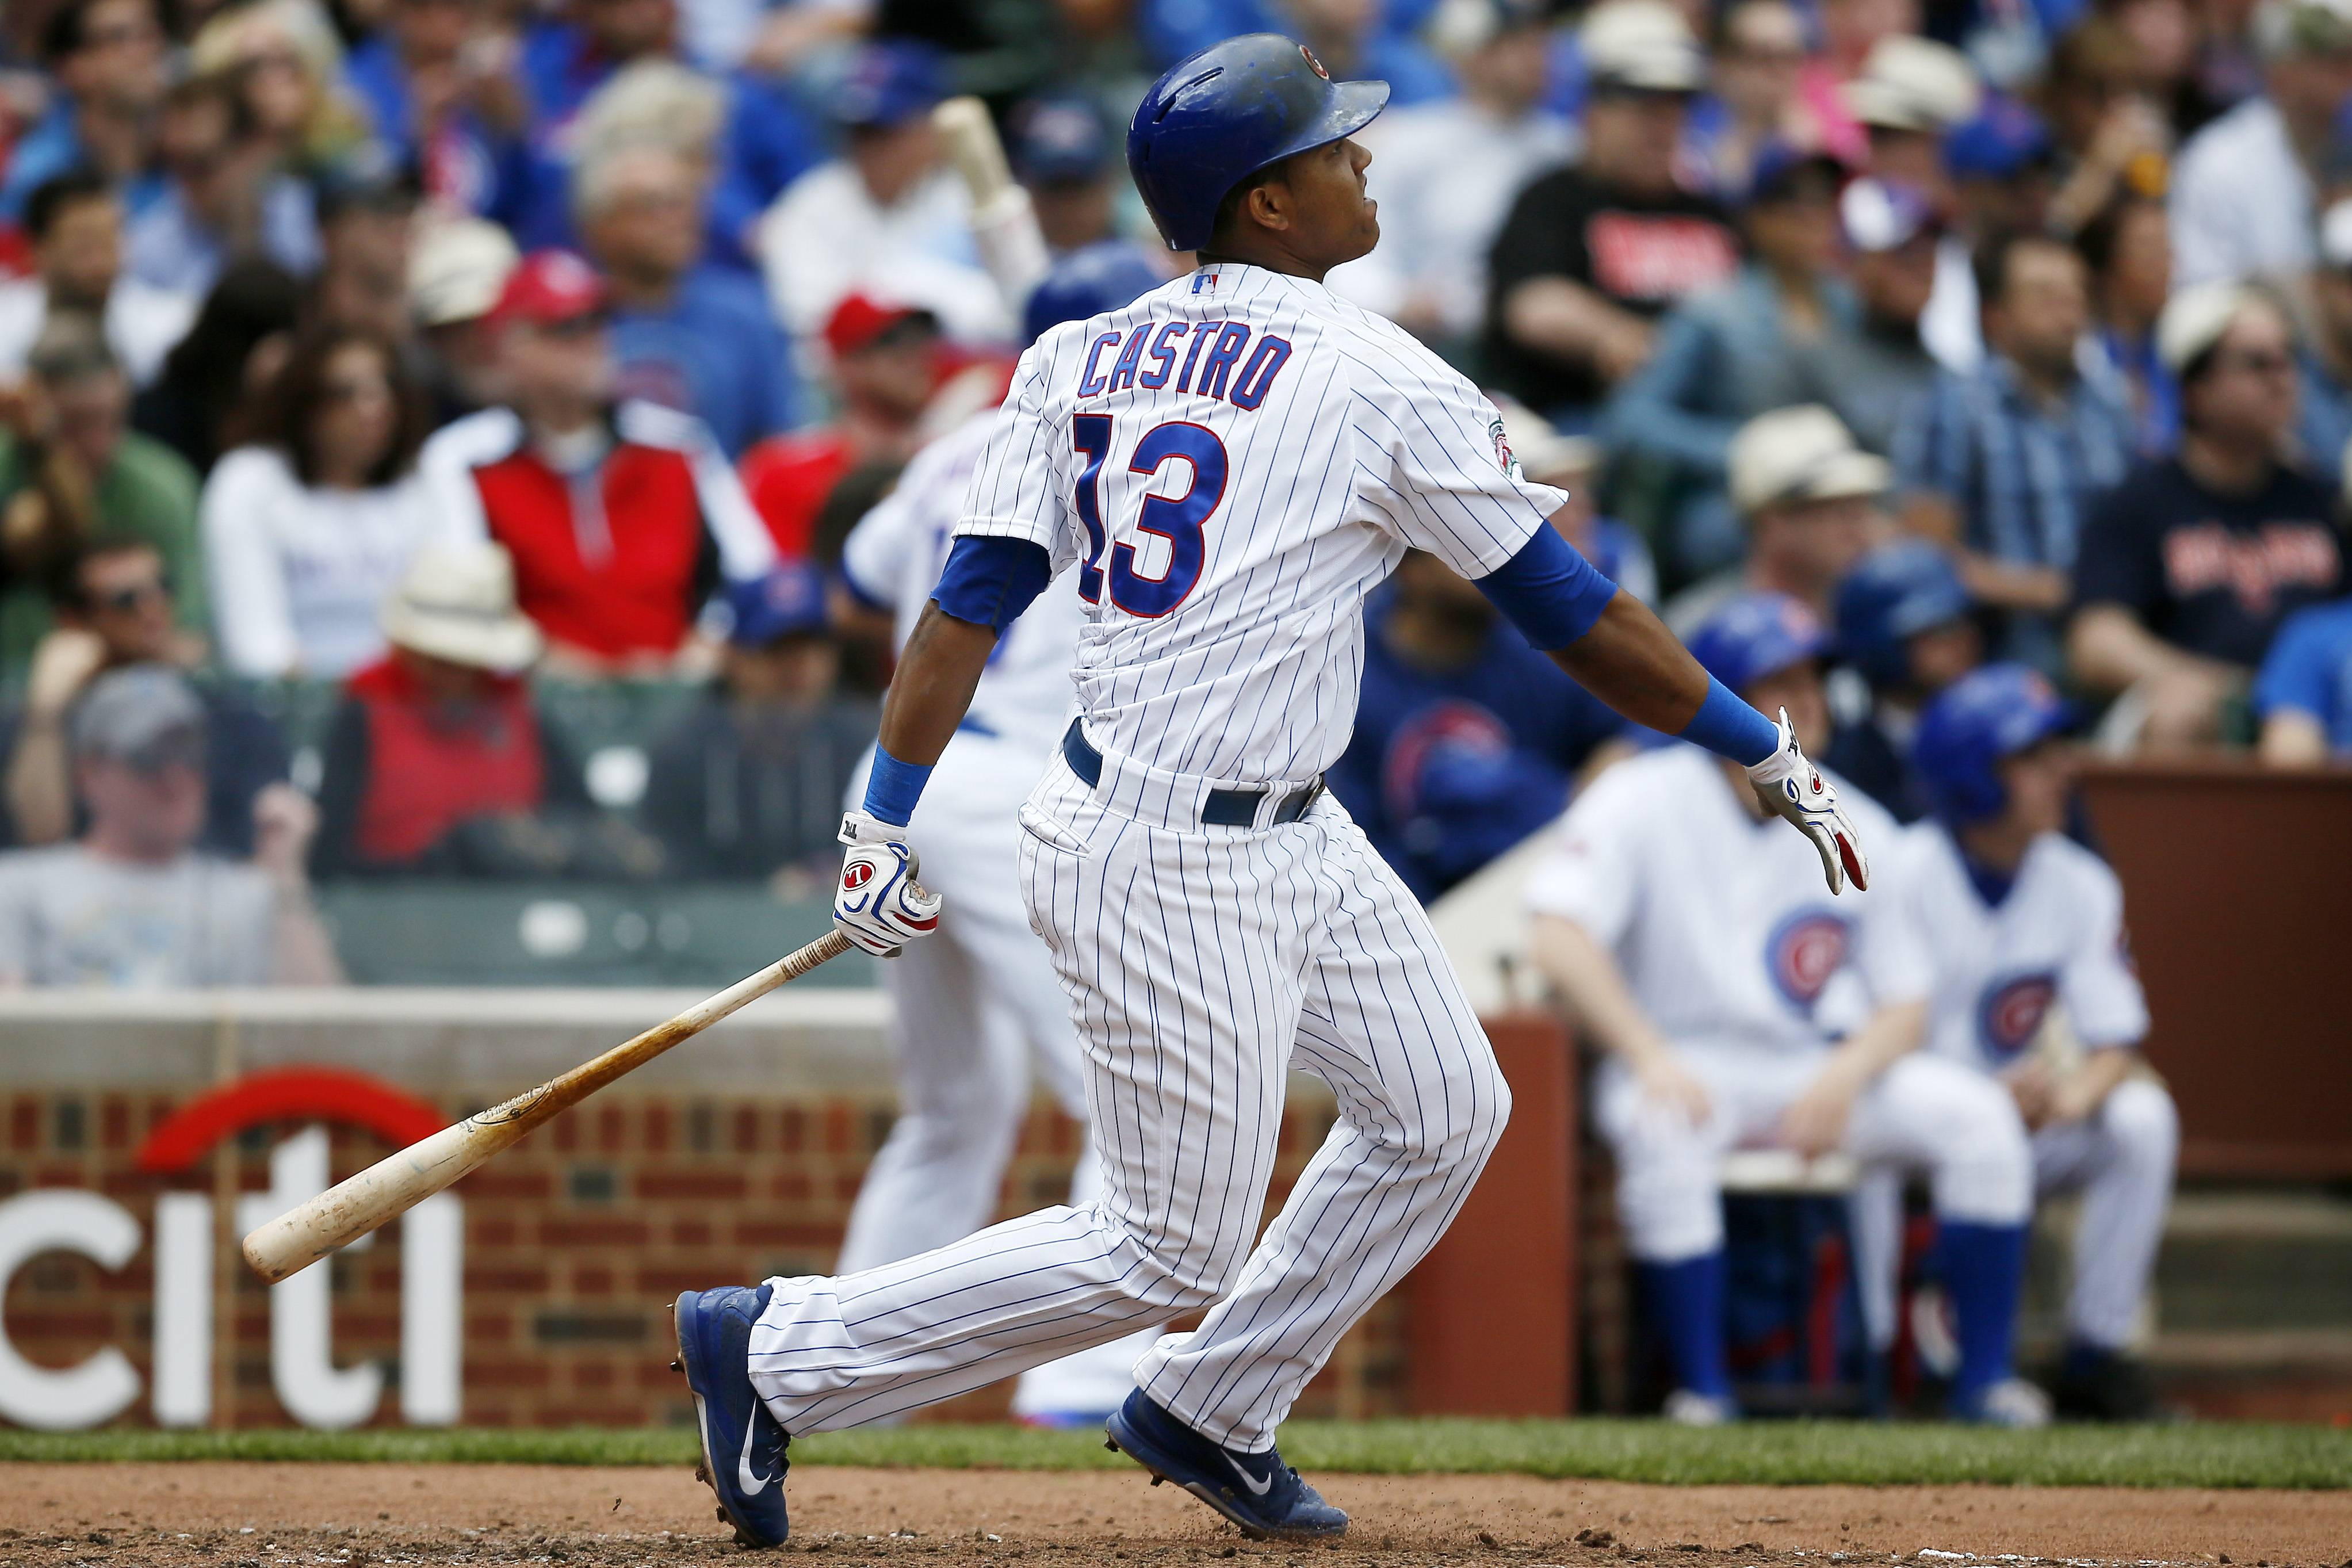 Cubs shortstop Starlin Castro looks like a different person both on and off the field, according to Bruce Miles.